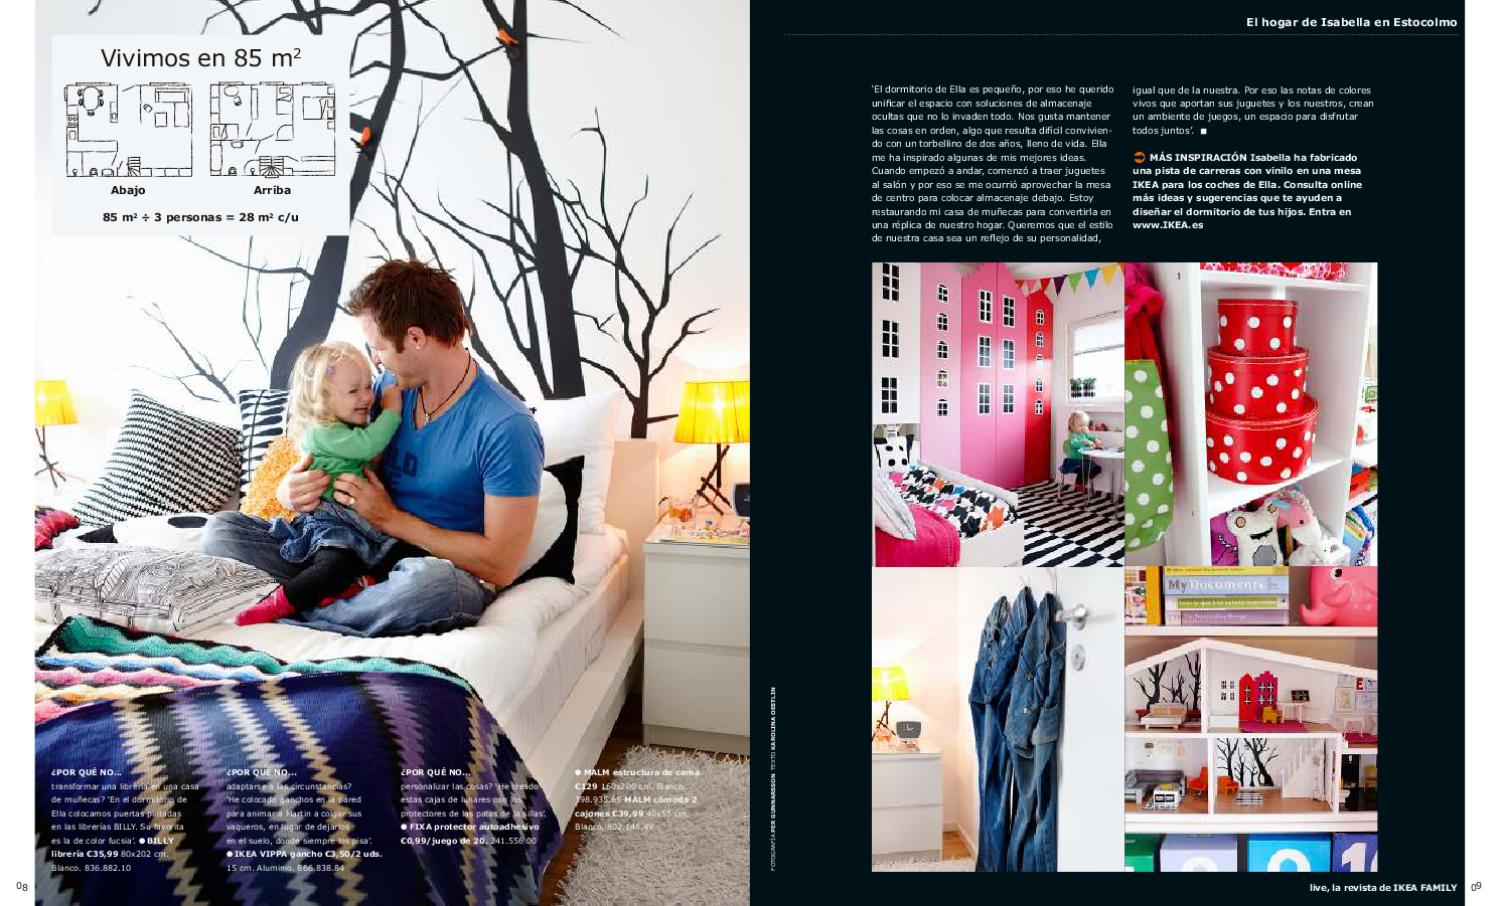 Ikea Live Otoño Family Issuu By 2012 D9WEHbeY2I